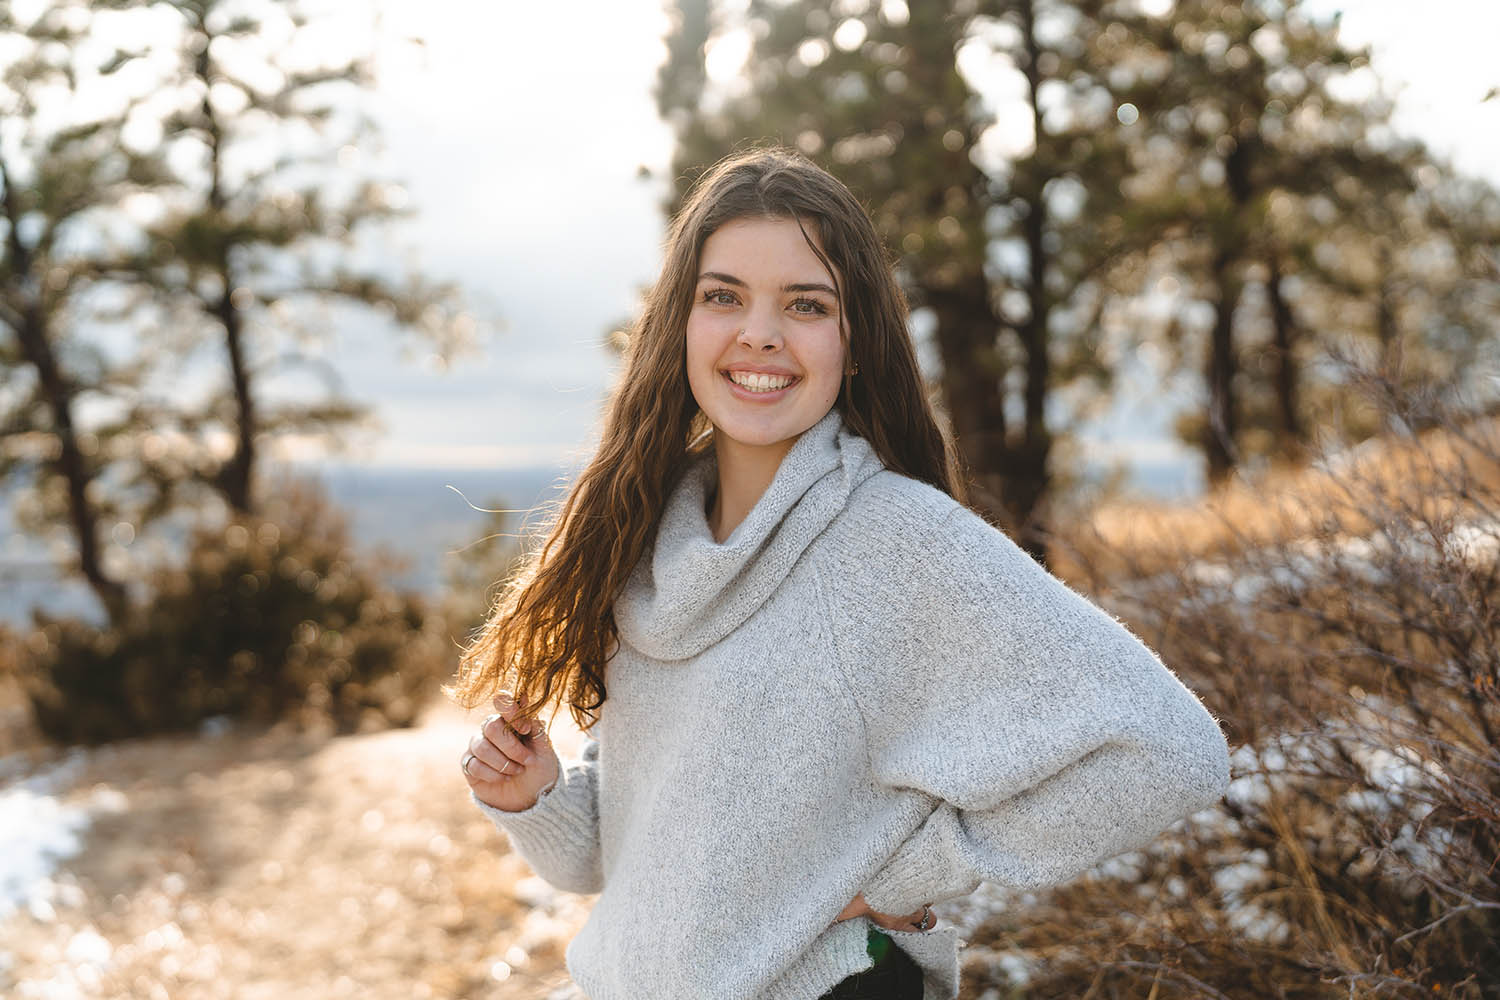 A high school senior girls poses wearing a gray sweater on a Montana hilltop